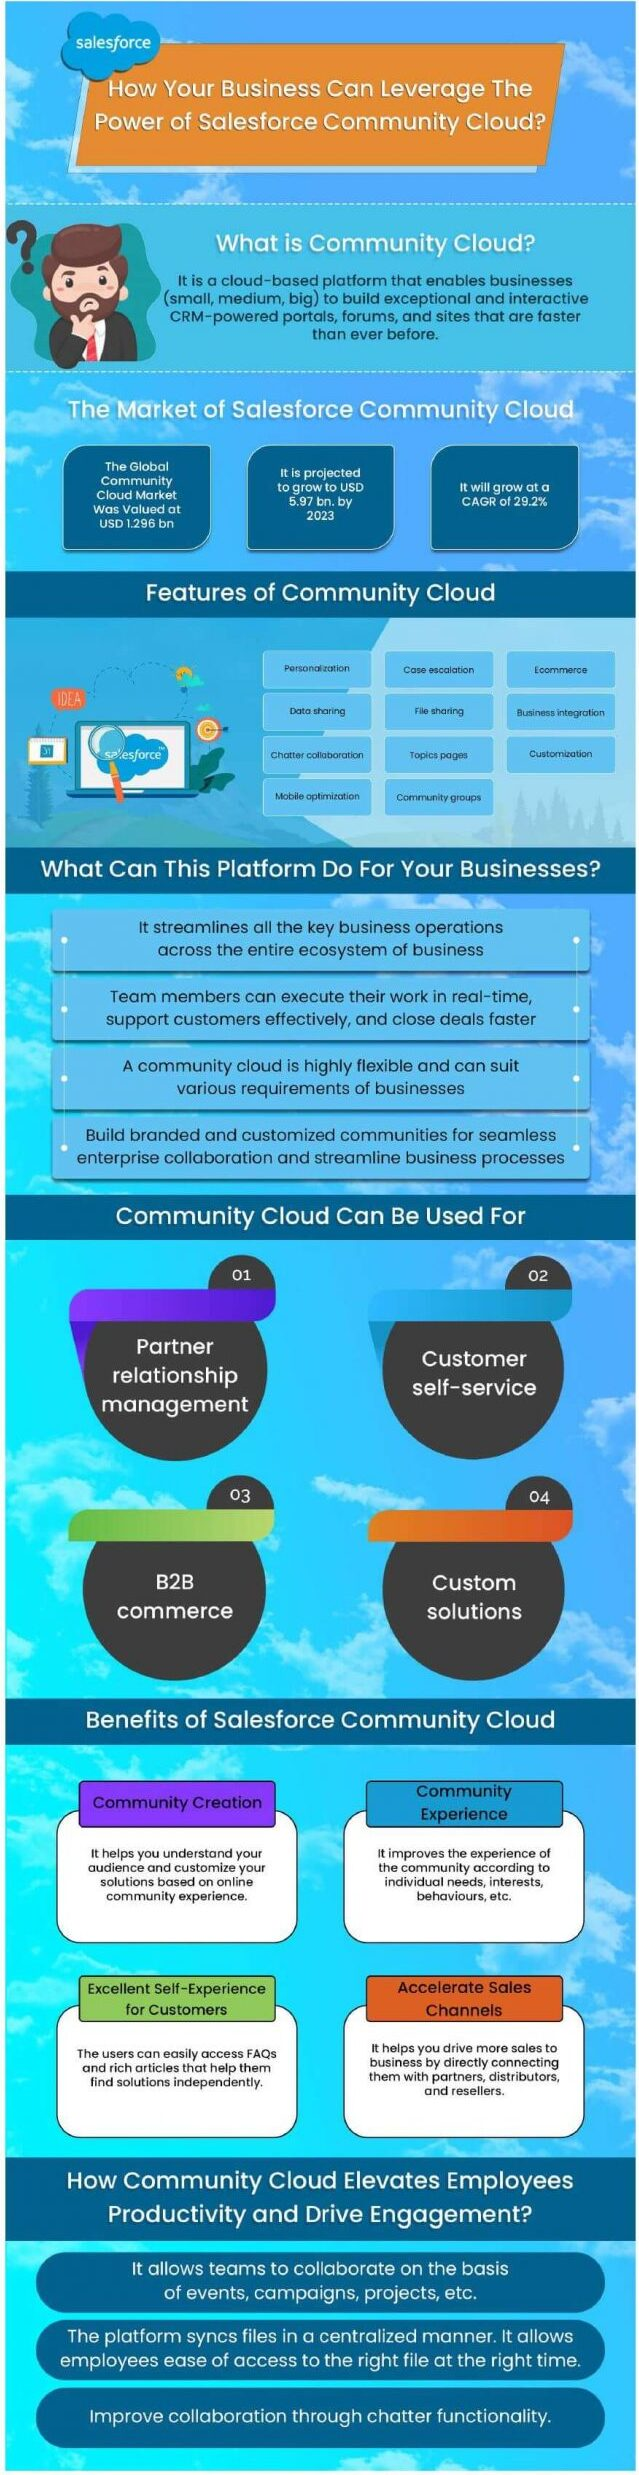 How Your Business Can Leverage The Power of Salesforce Community Cloud?